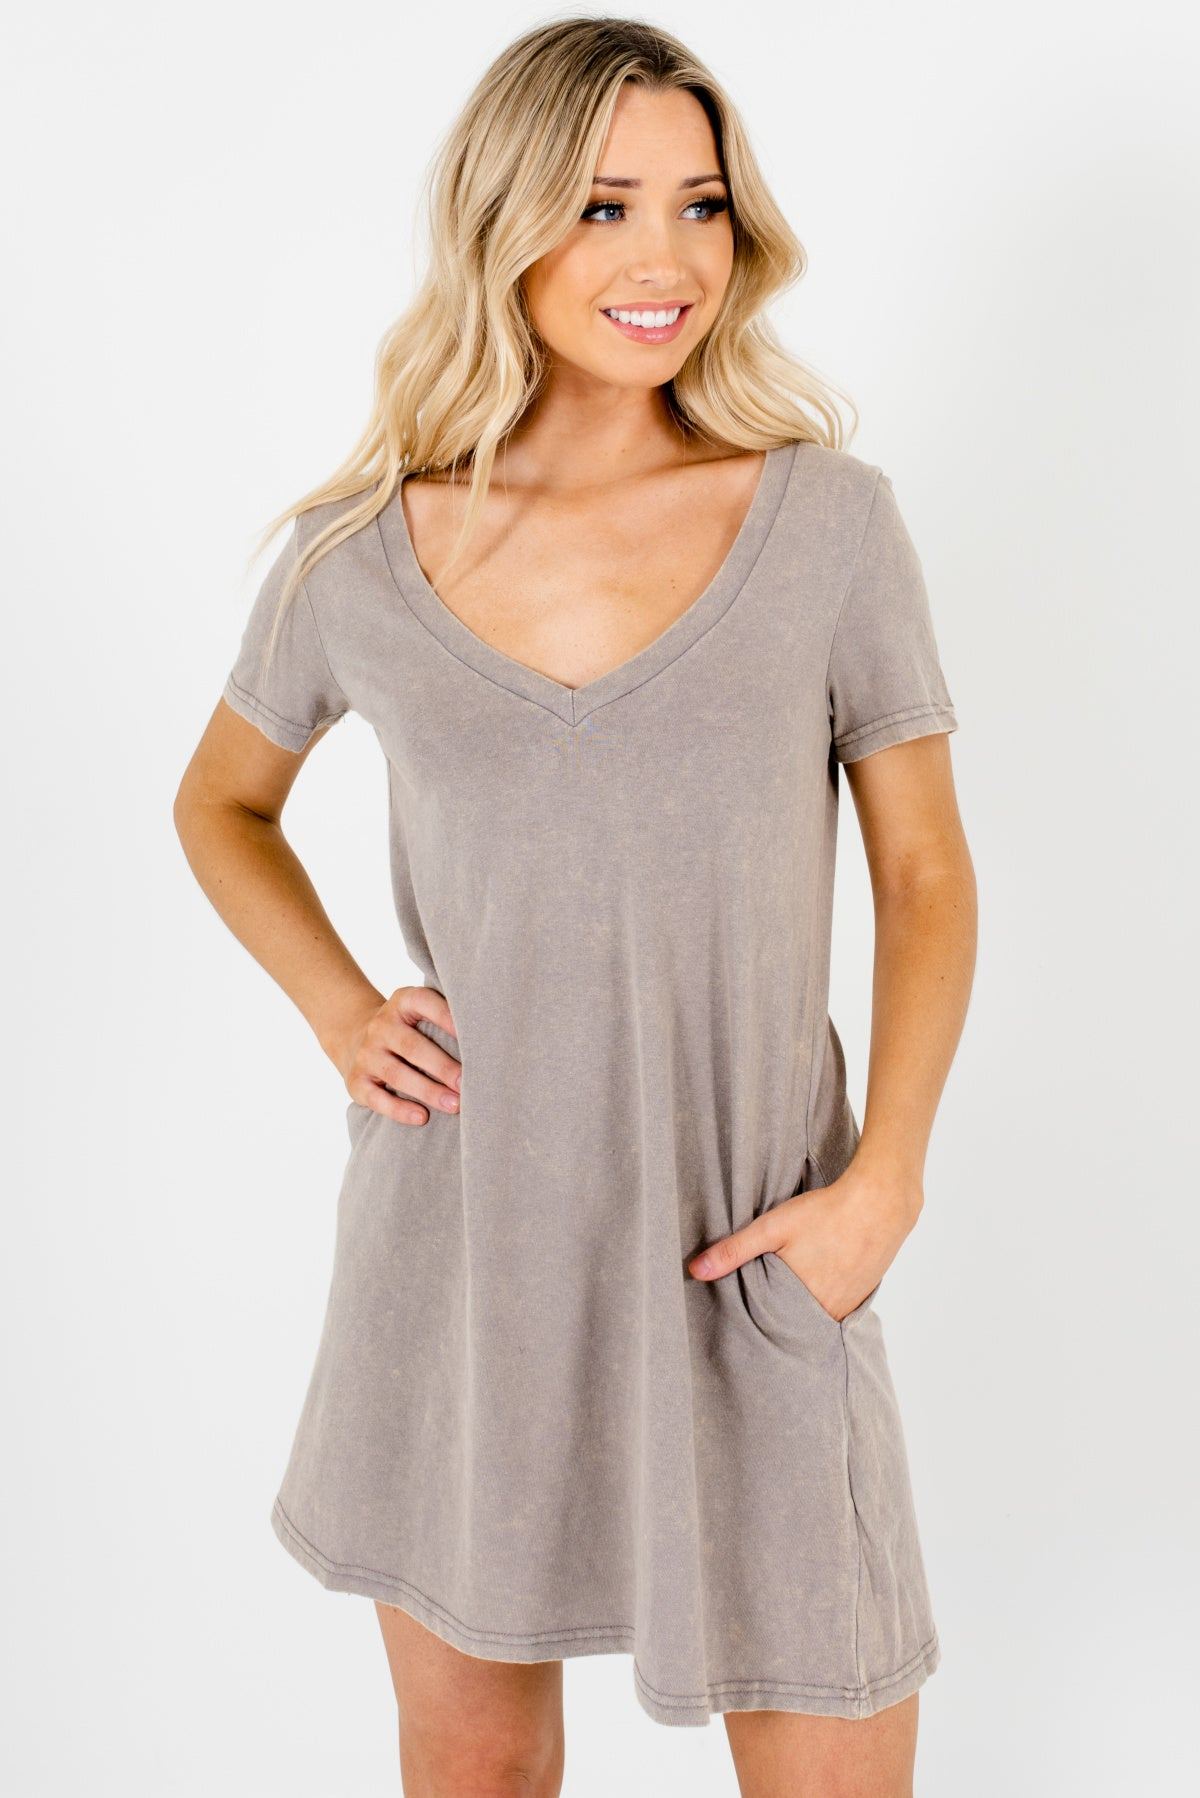 Gray Mineral Wash Material Boutique Mini Dresses for Women